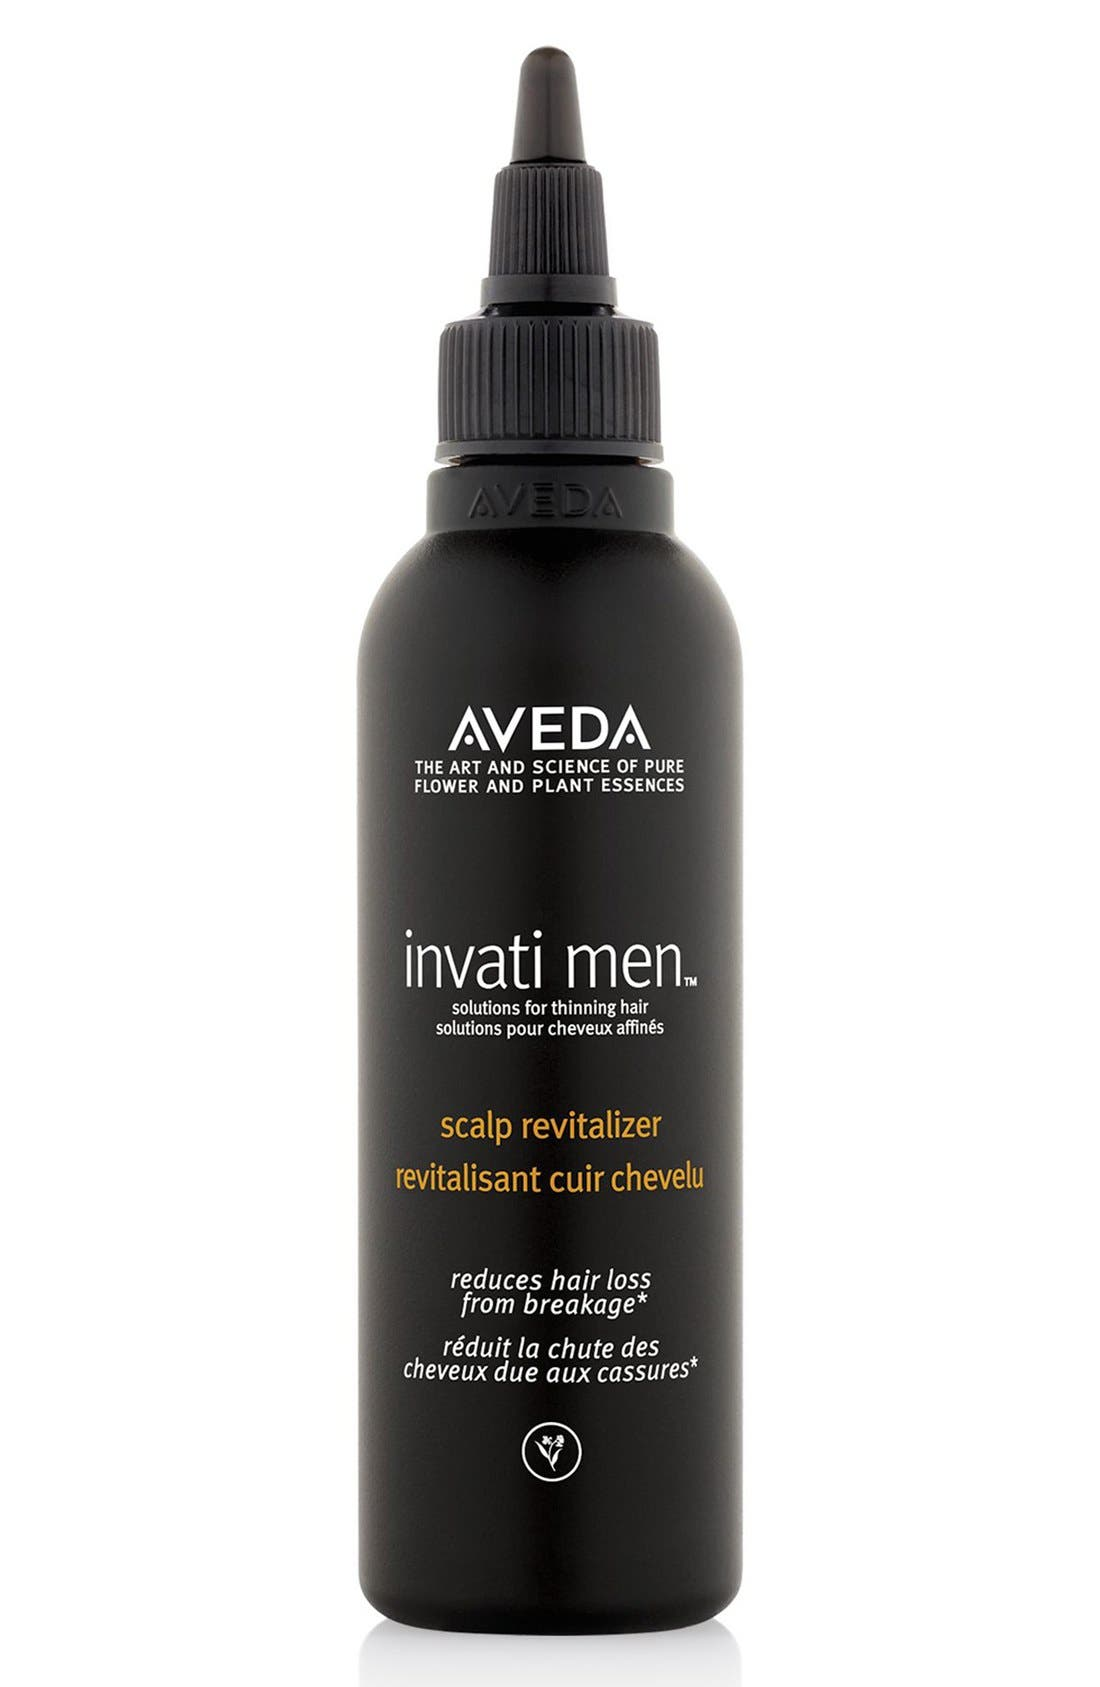 Aveda invati men™ Scalp Revitalizer